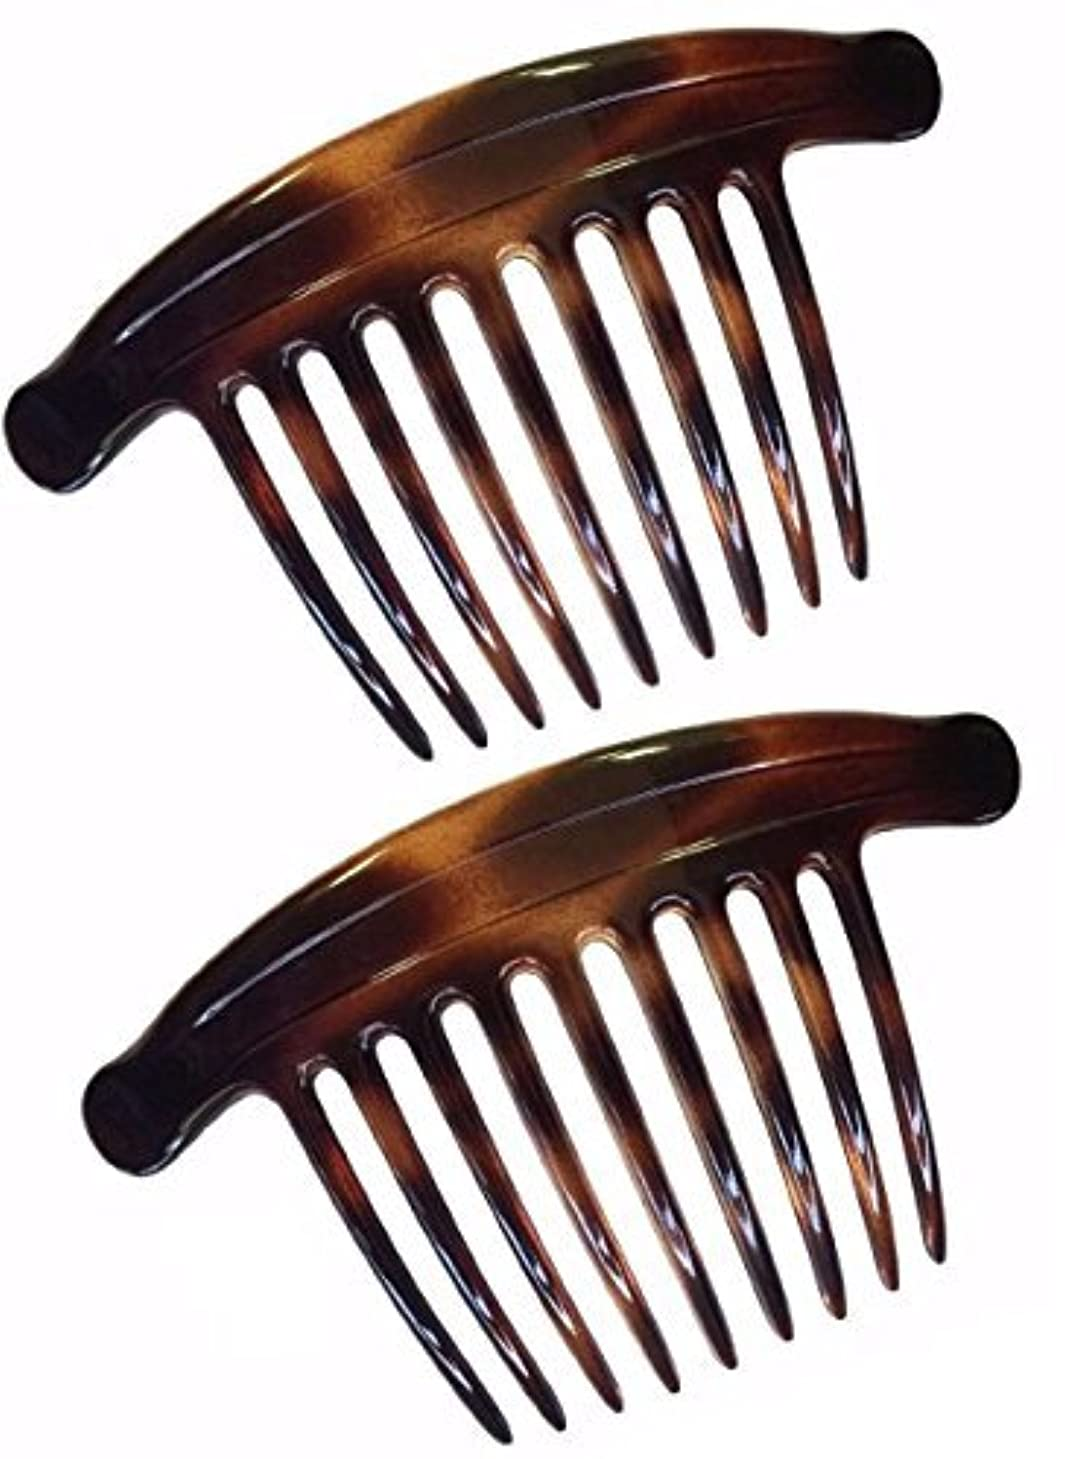 Parcelona French Lip Interlocking 9 Teeth 4.5 Inch Large Cellulose Tortoise Shell Side Hair Combs [並行輸入品]